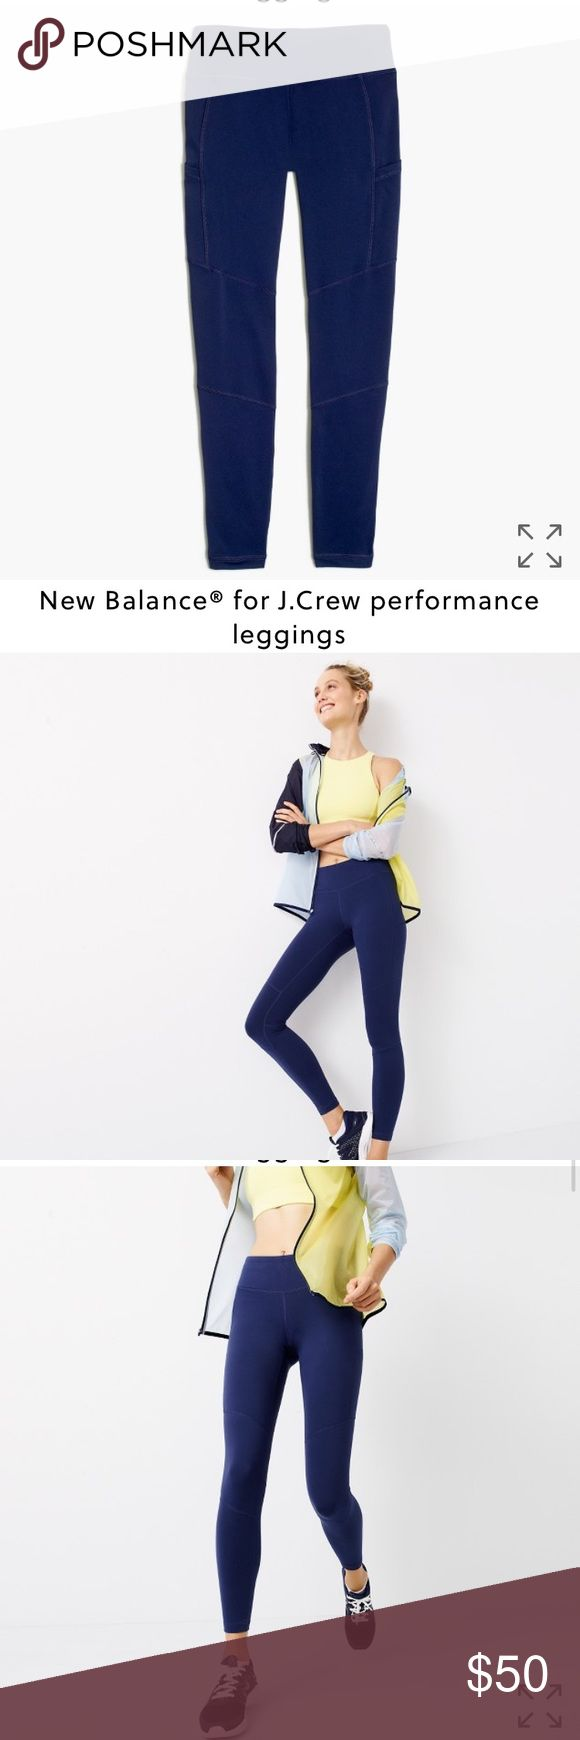 """New Balance® for J.Crew performance leggings NWT/ SIZE & FIT 28"""" inseam.  PRODUCT DETAILS We partnered with our friends at New Balance to bring you our first-ever collection of workout clothes—in techy fabrics and unique colors and prints. These full-length leggings feature flattering contoured seams and moisture-wicking NB Dry fabric (plus an antimicrobial treatment that's odor resistant). Added bonus: slim side pockets for carrying your key and I.D.   Nylon/Lycra® spandex. Side pockets…"""